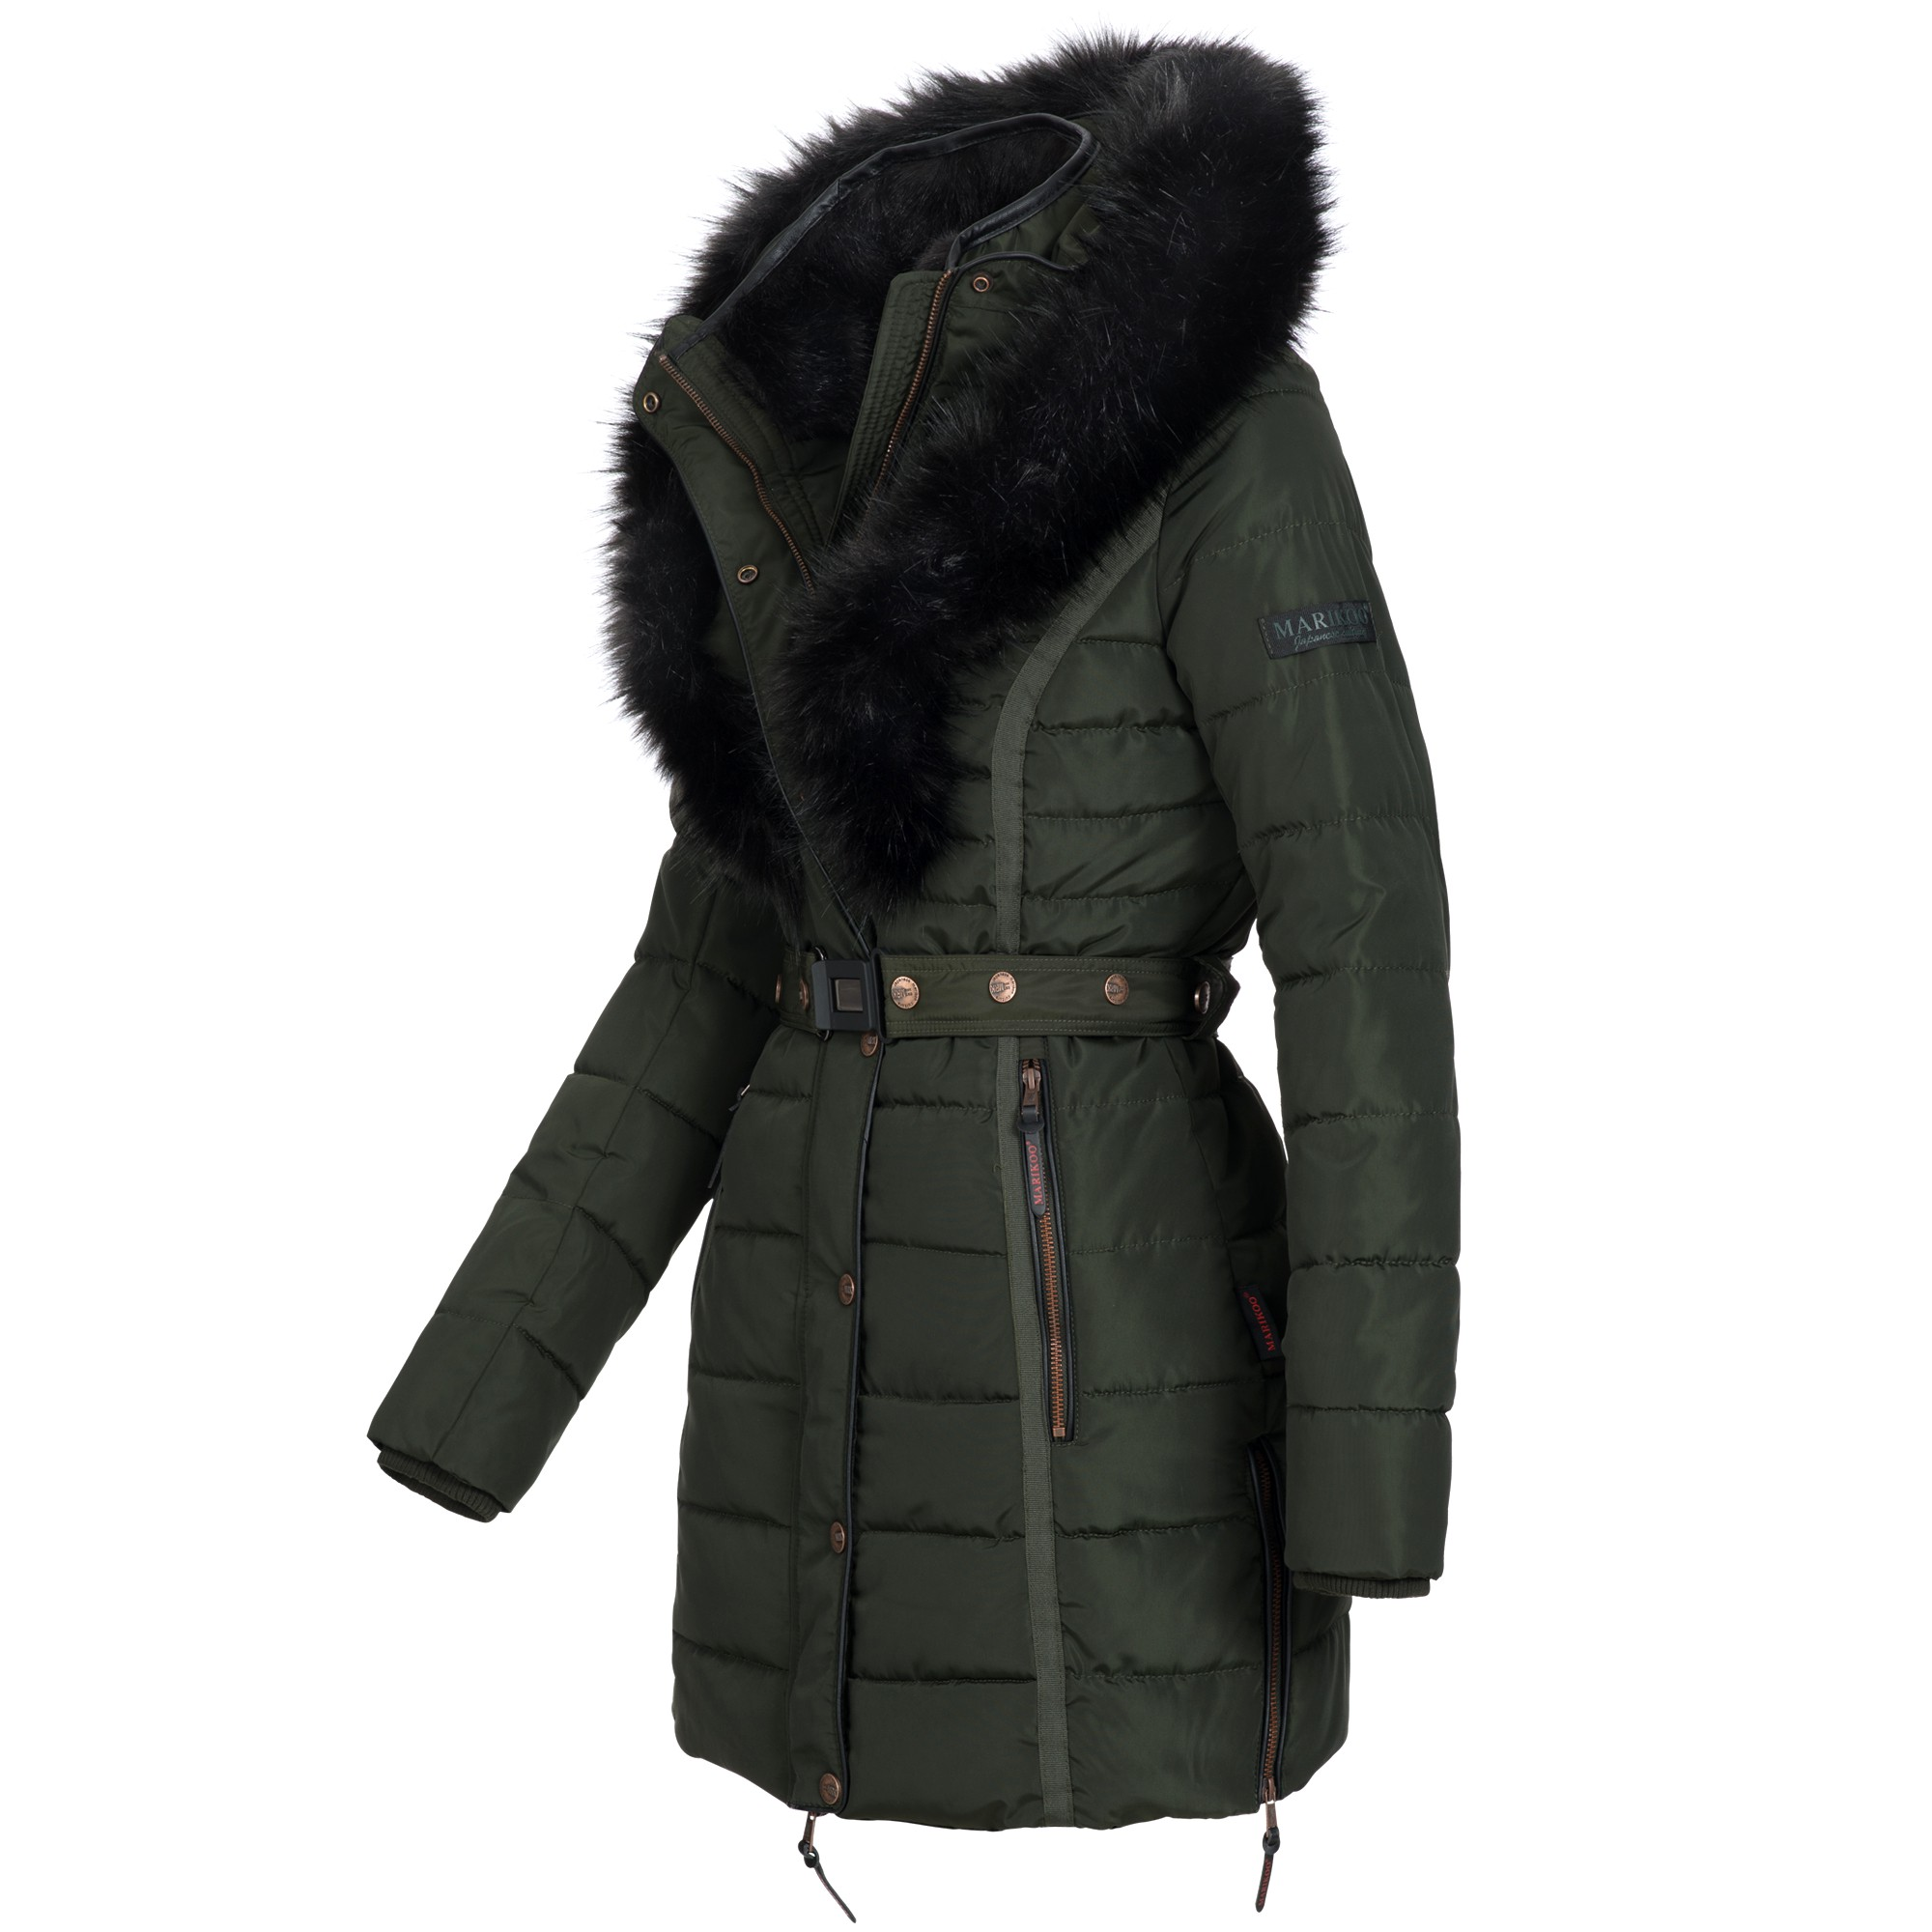 marikoo turnam damen mantel jacke steppjacke winterjacke warm gef ttert xs xxl ebay. Black Bedroom Furniture Sets. Home Design Ideas